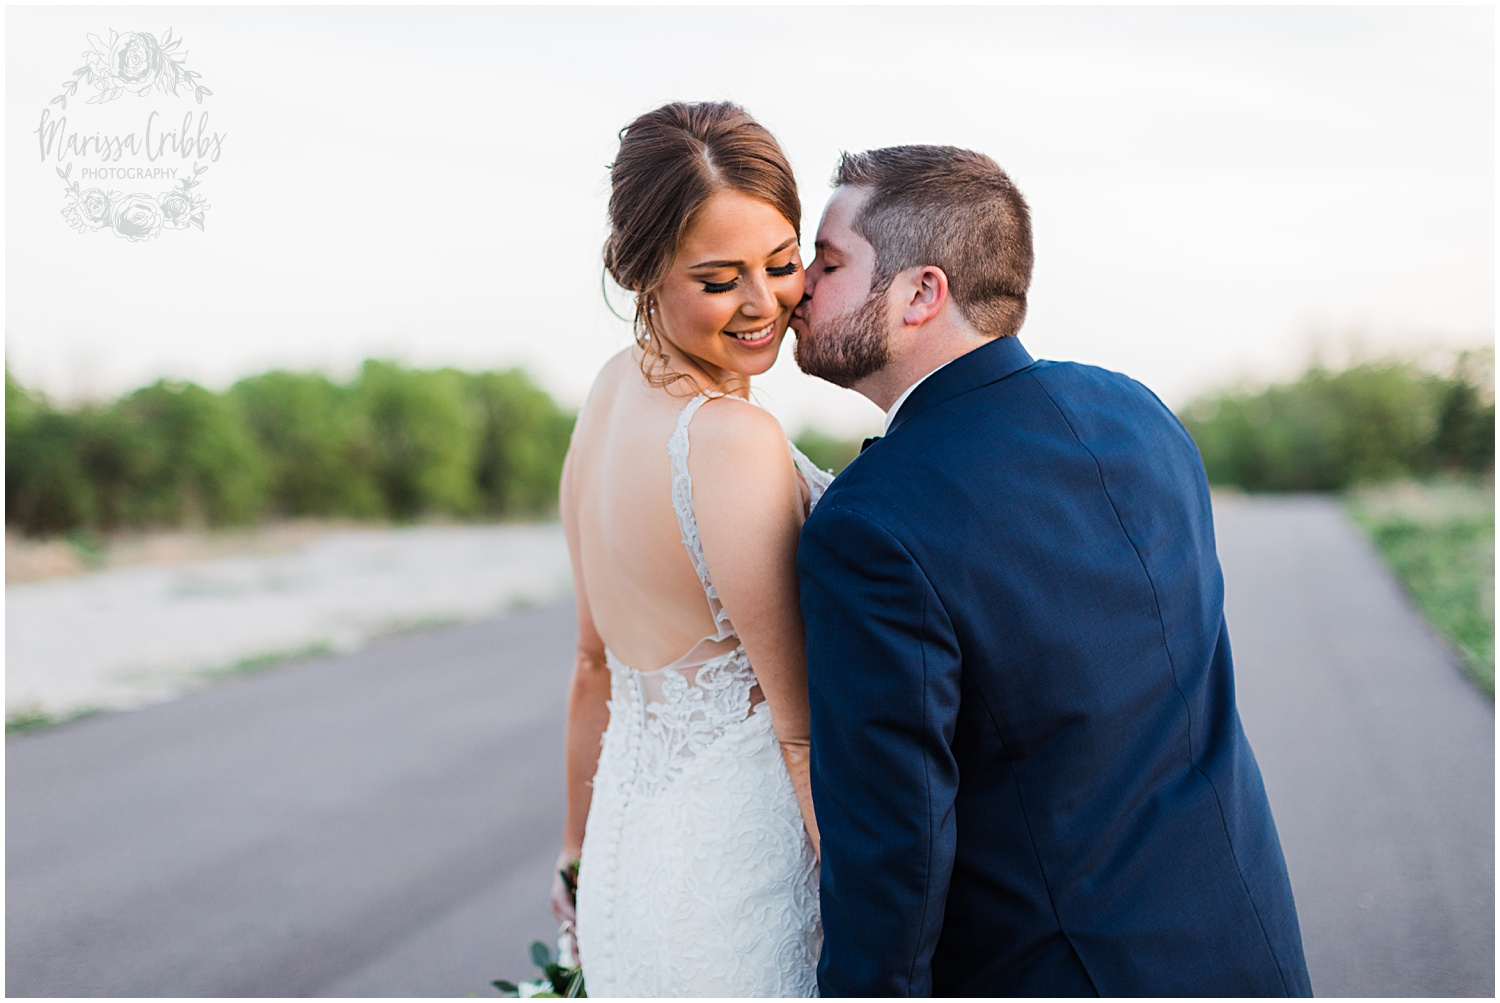 JESSICA & MARK MARRIED SNEAK PEEKS | 1890 EVENT SPACE WEDDING | MARISSA CRIBBS PHOTOGRAPHY_7905.jpg